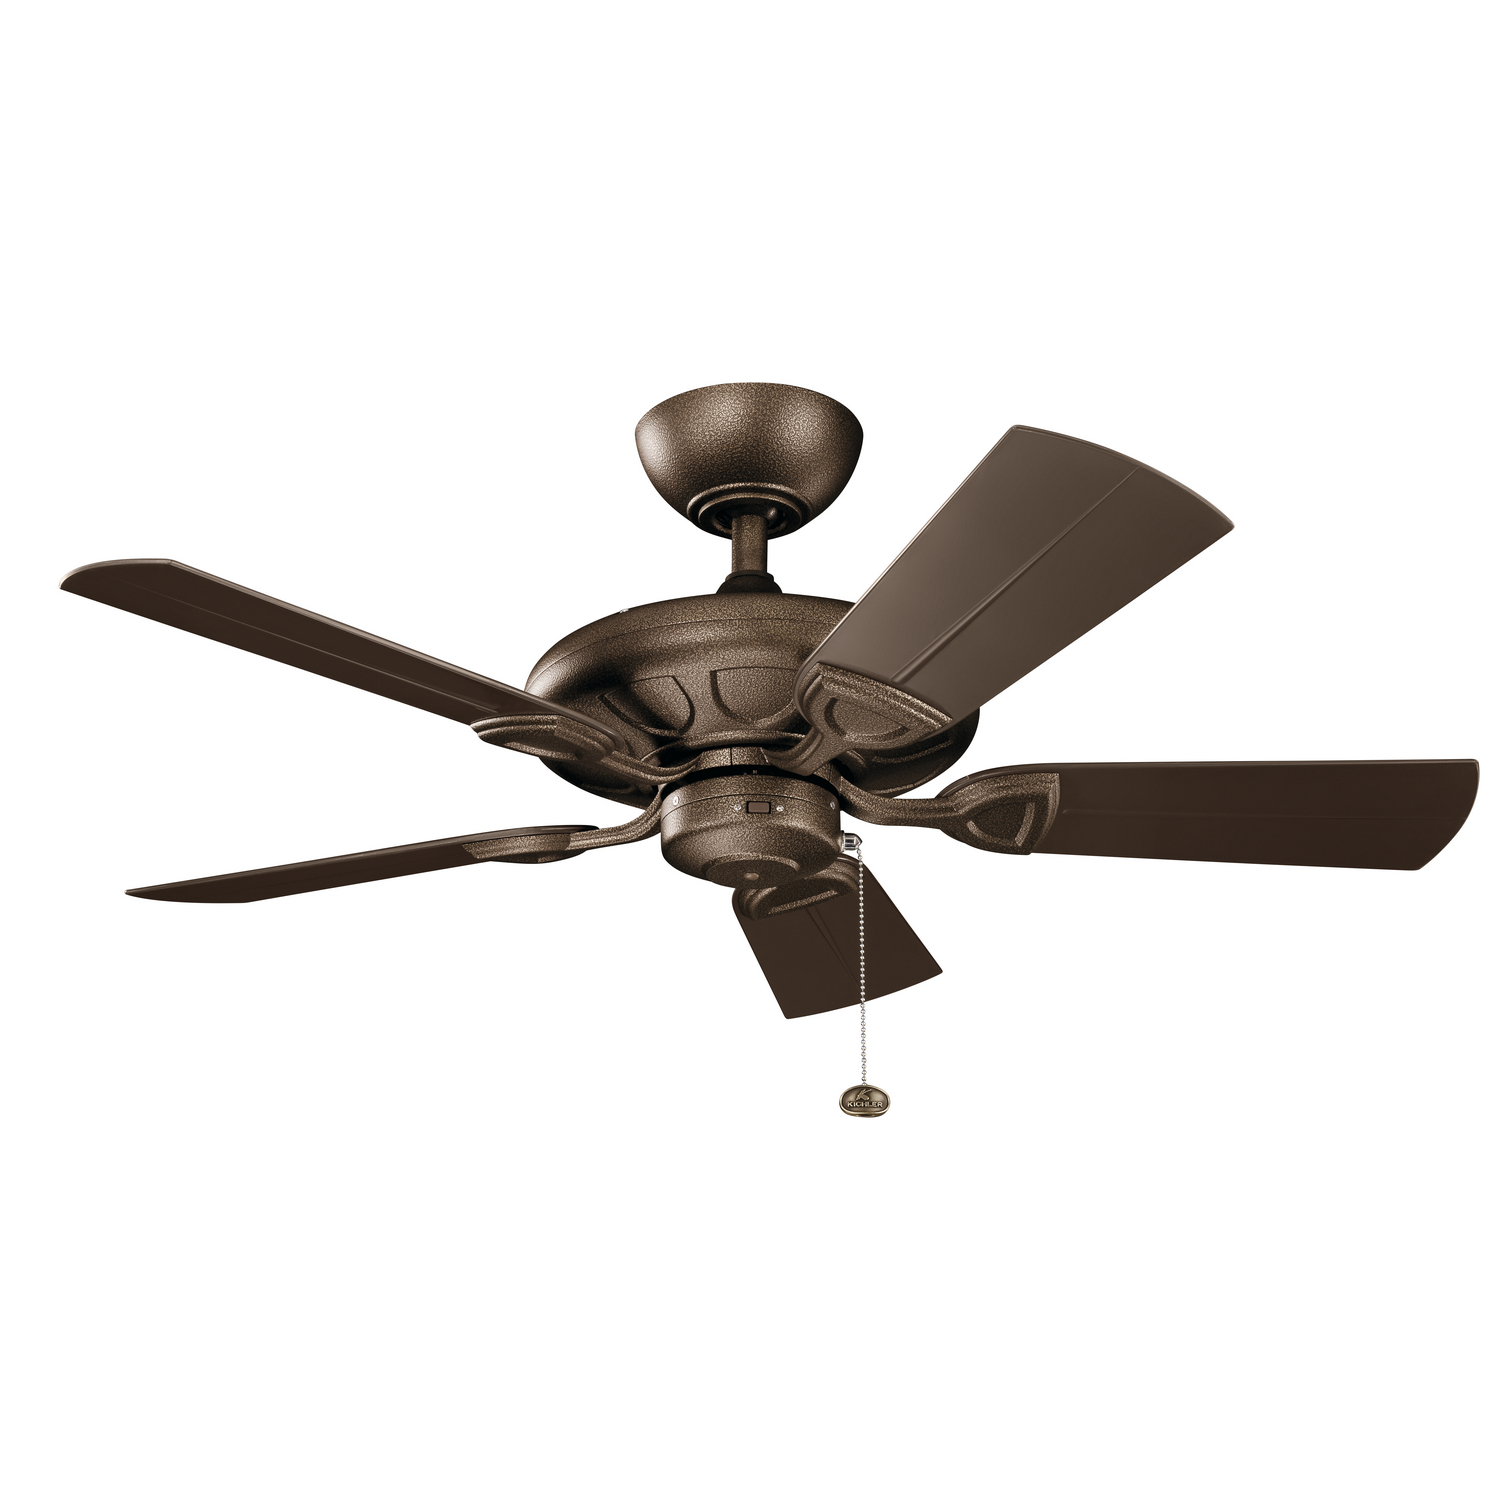 42 inchCeiling Fan from the Kevlar collection by Kichler 310144WCP